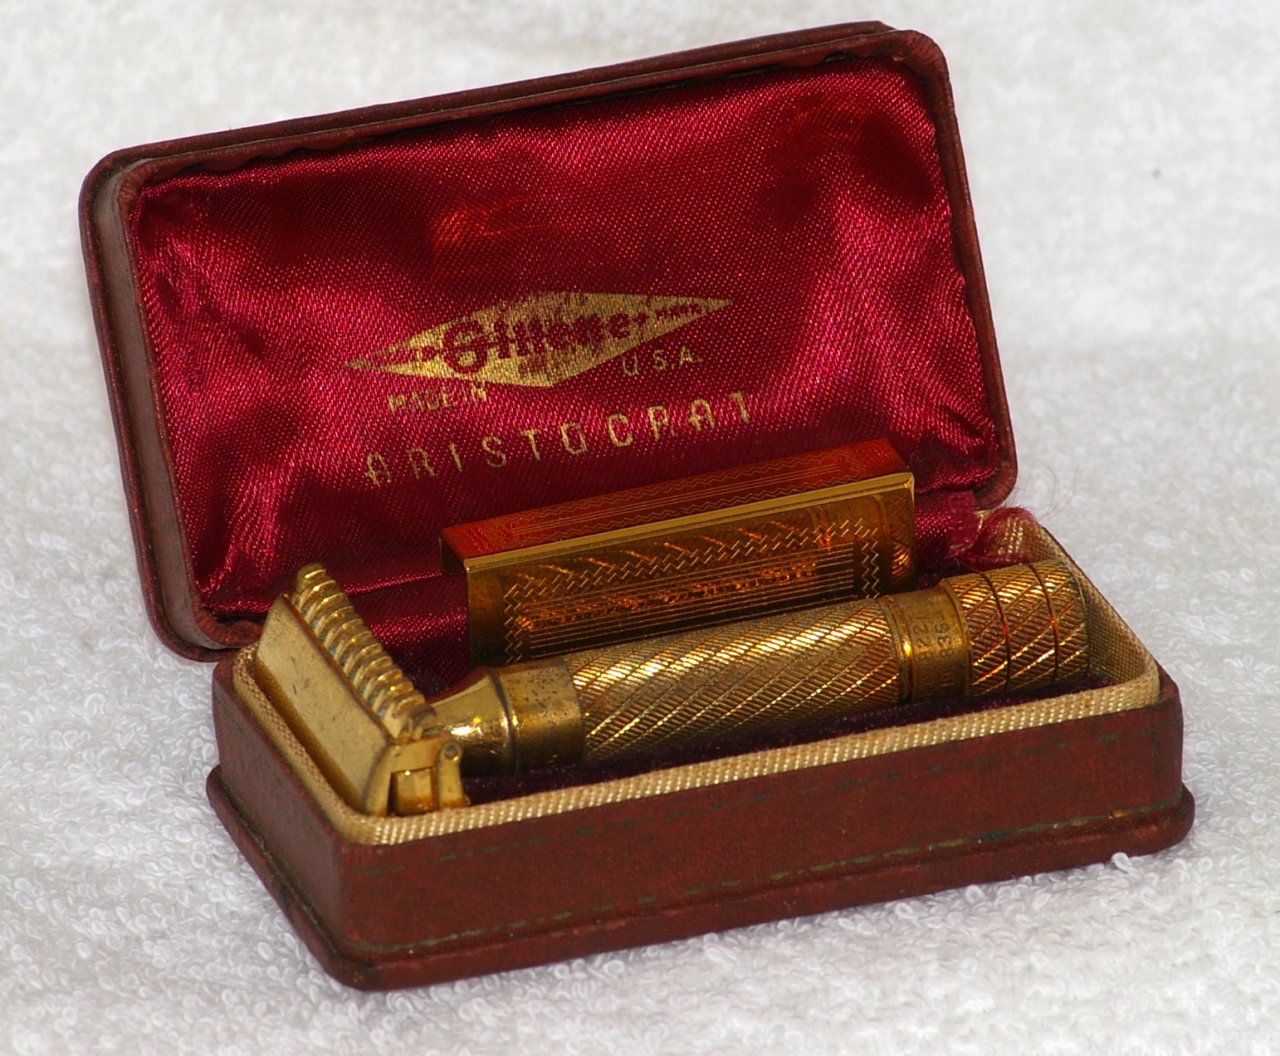 Gillette Aristocrat Razor Set from 1934